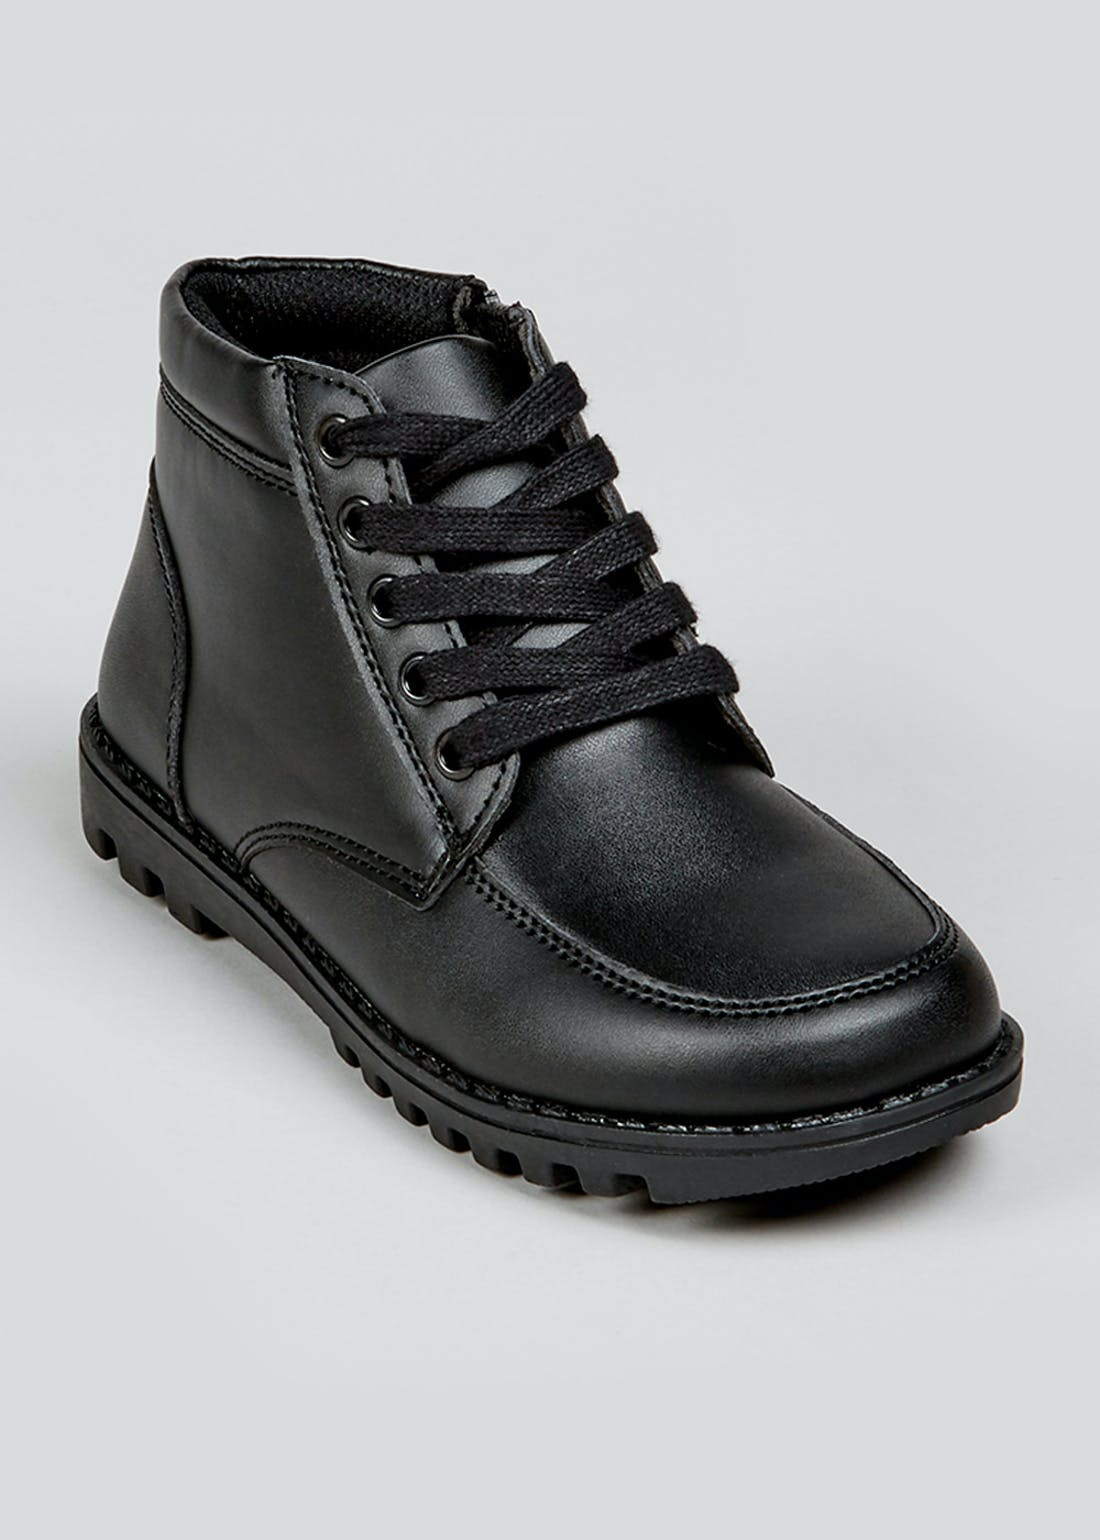 Kids Black Lace Up Boots (Younger 13-Older 5)